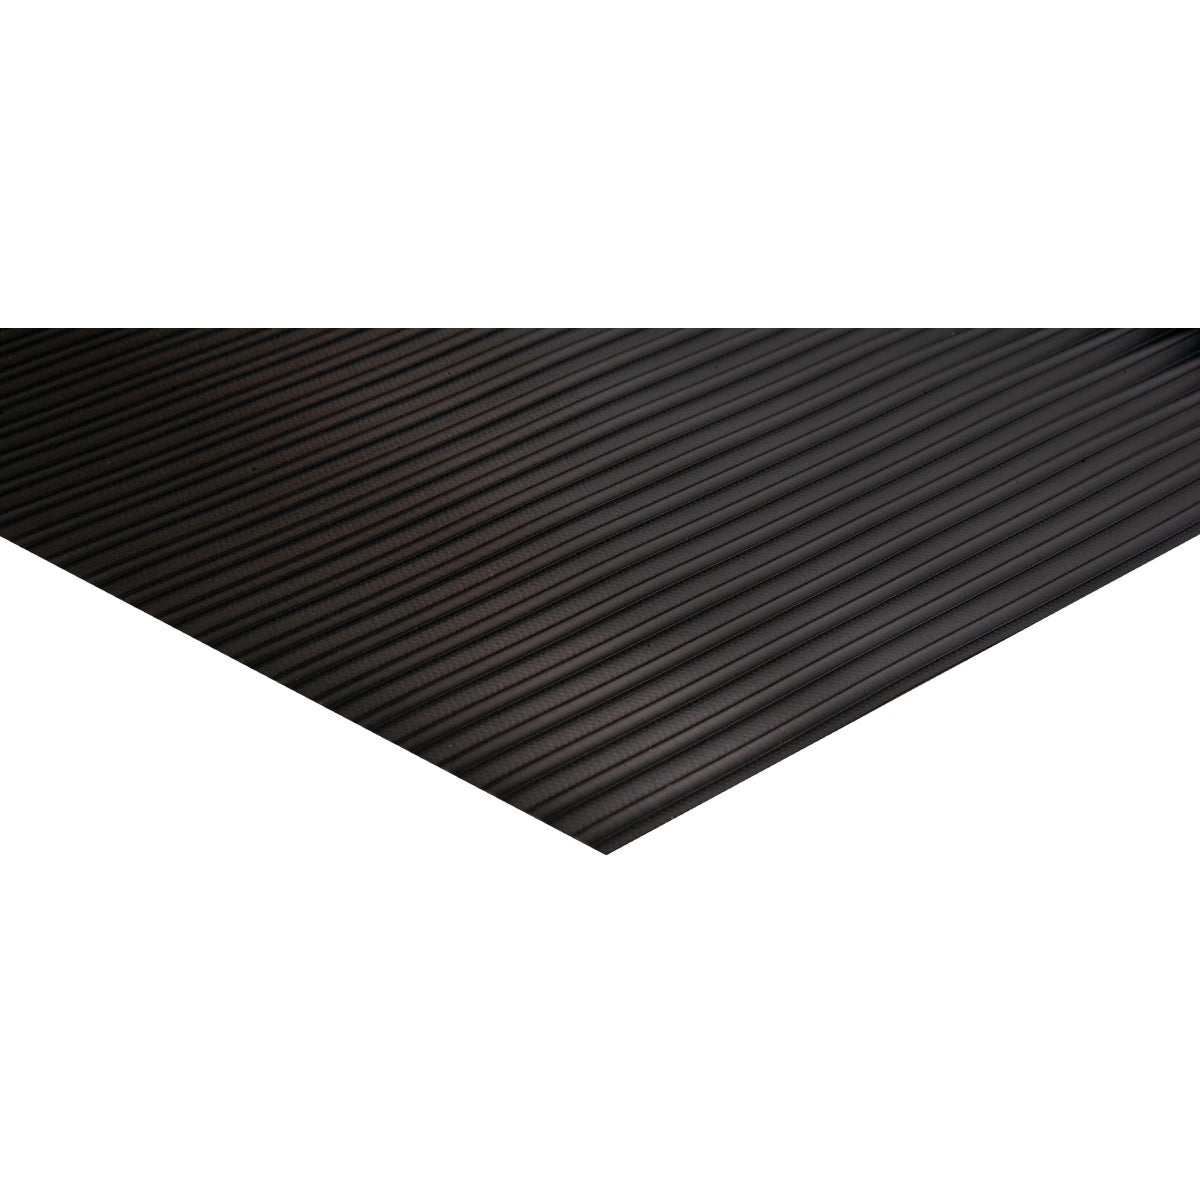 27X75 BLK VINYL MATTING - 4478-14651-27075 by Mohawk Home Products